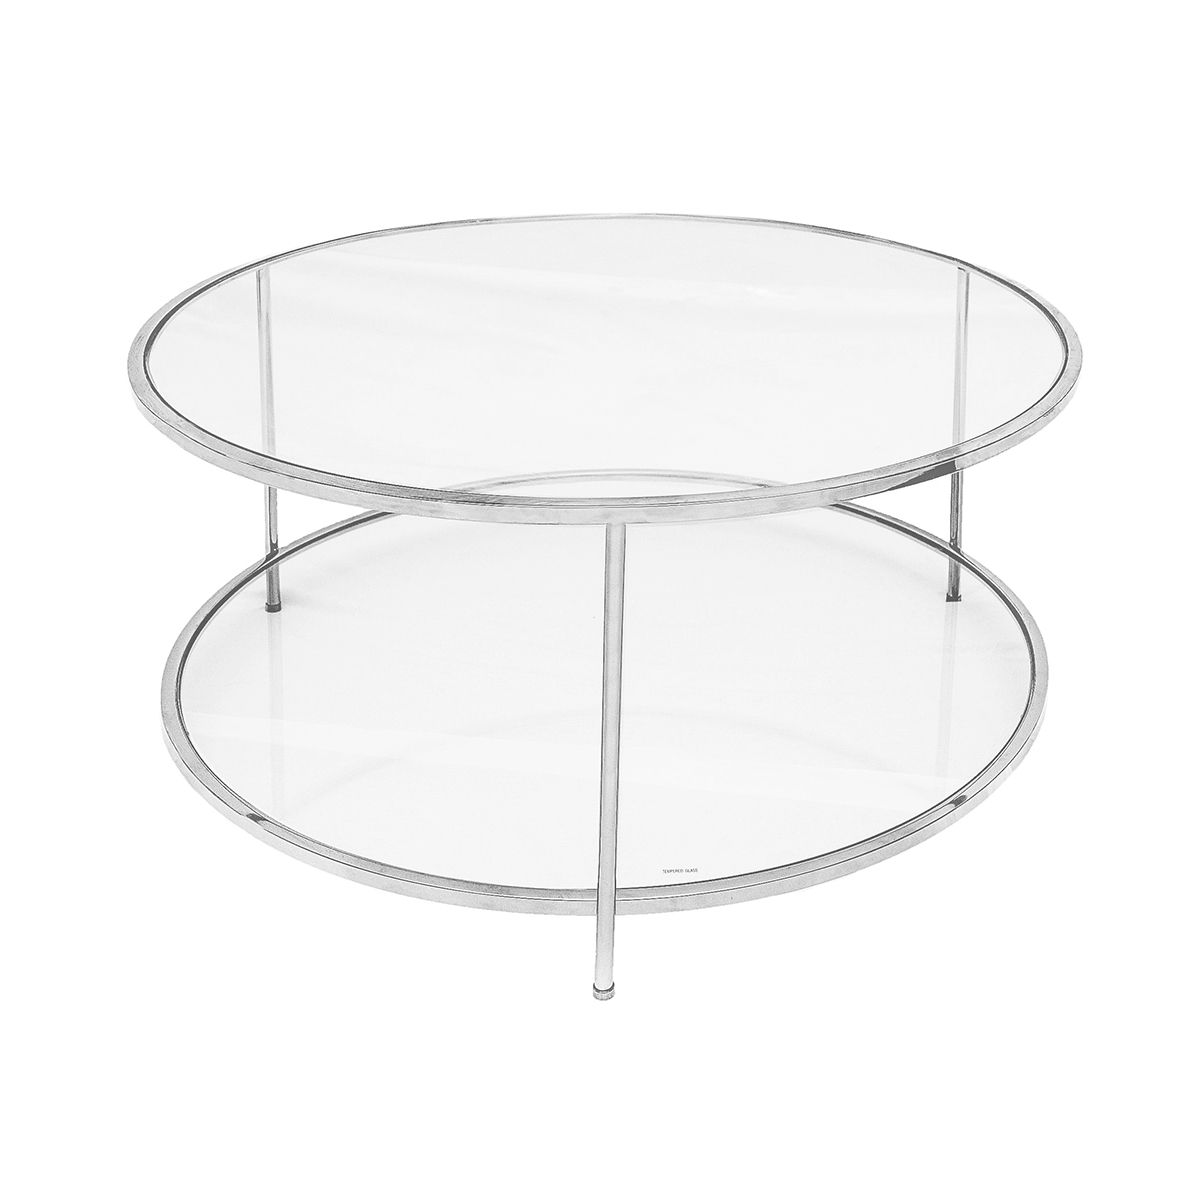 Sphere Coffee Table – Krom